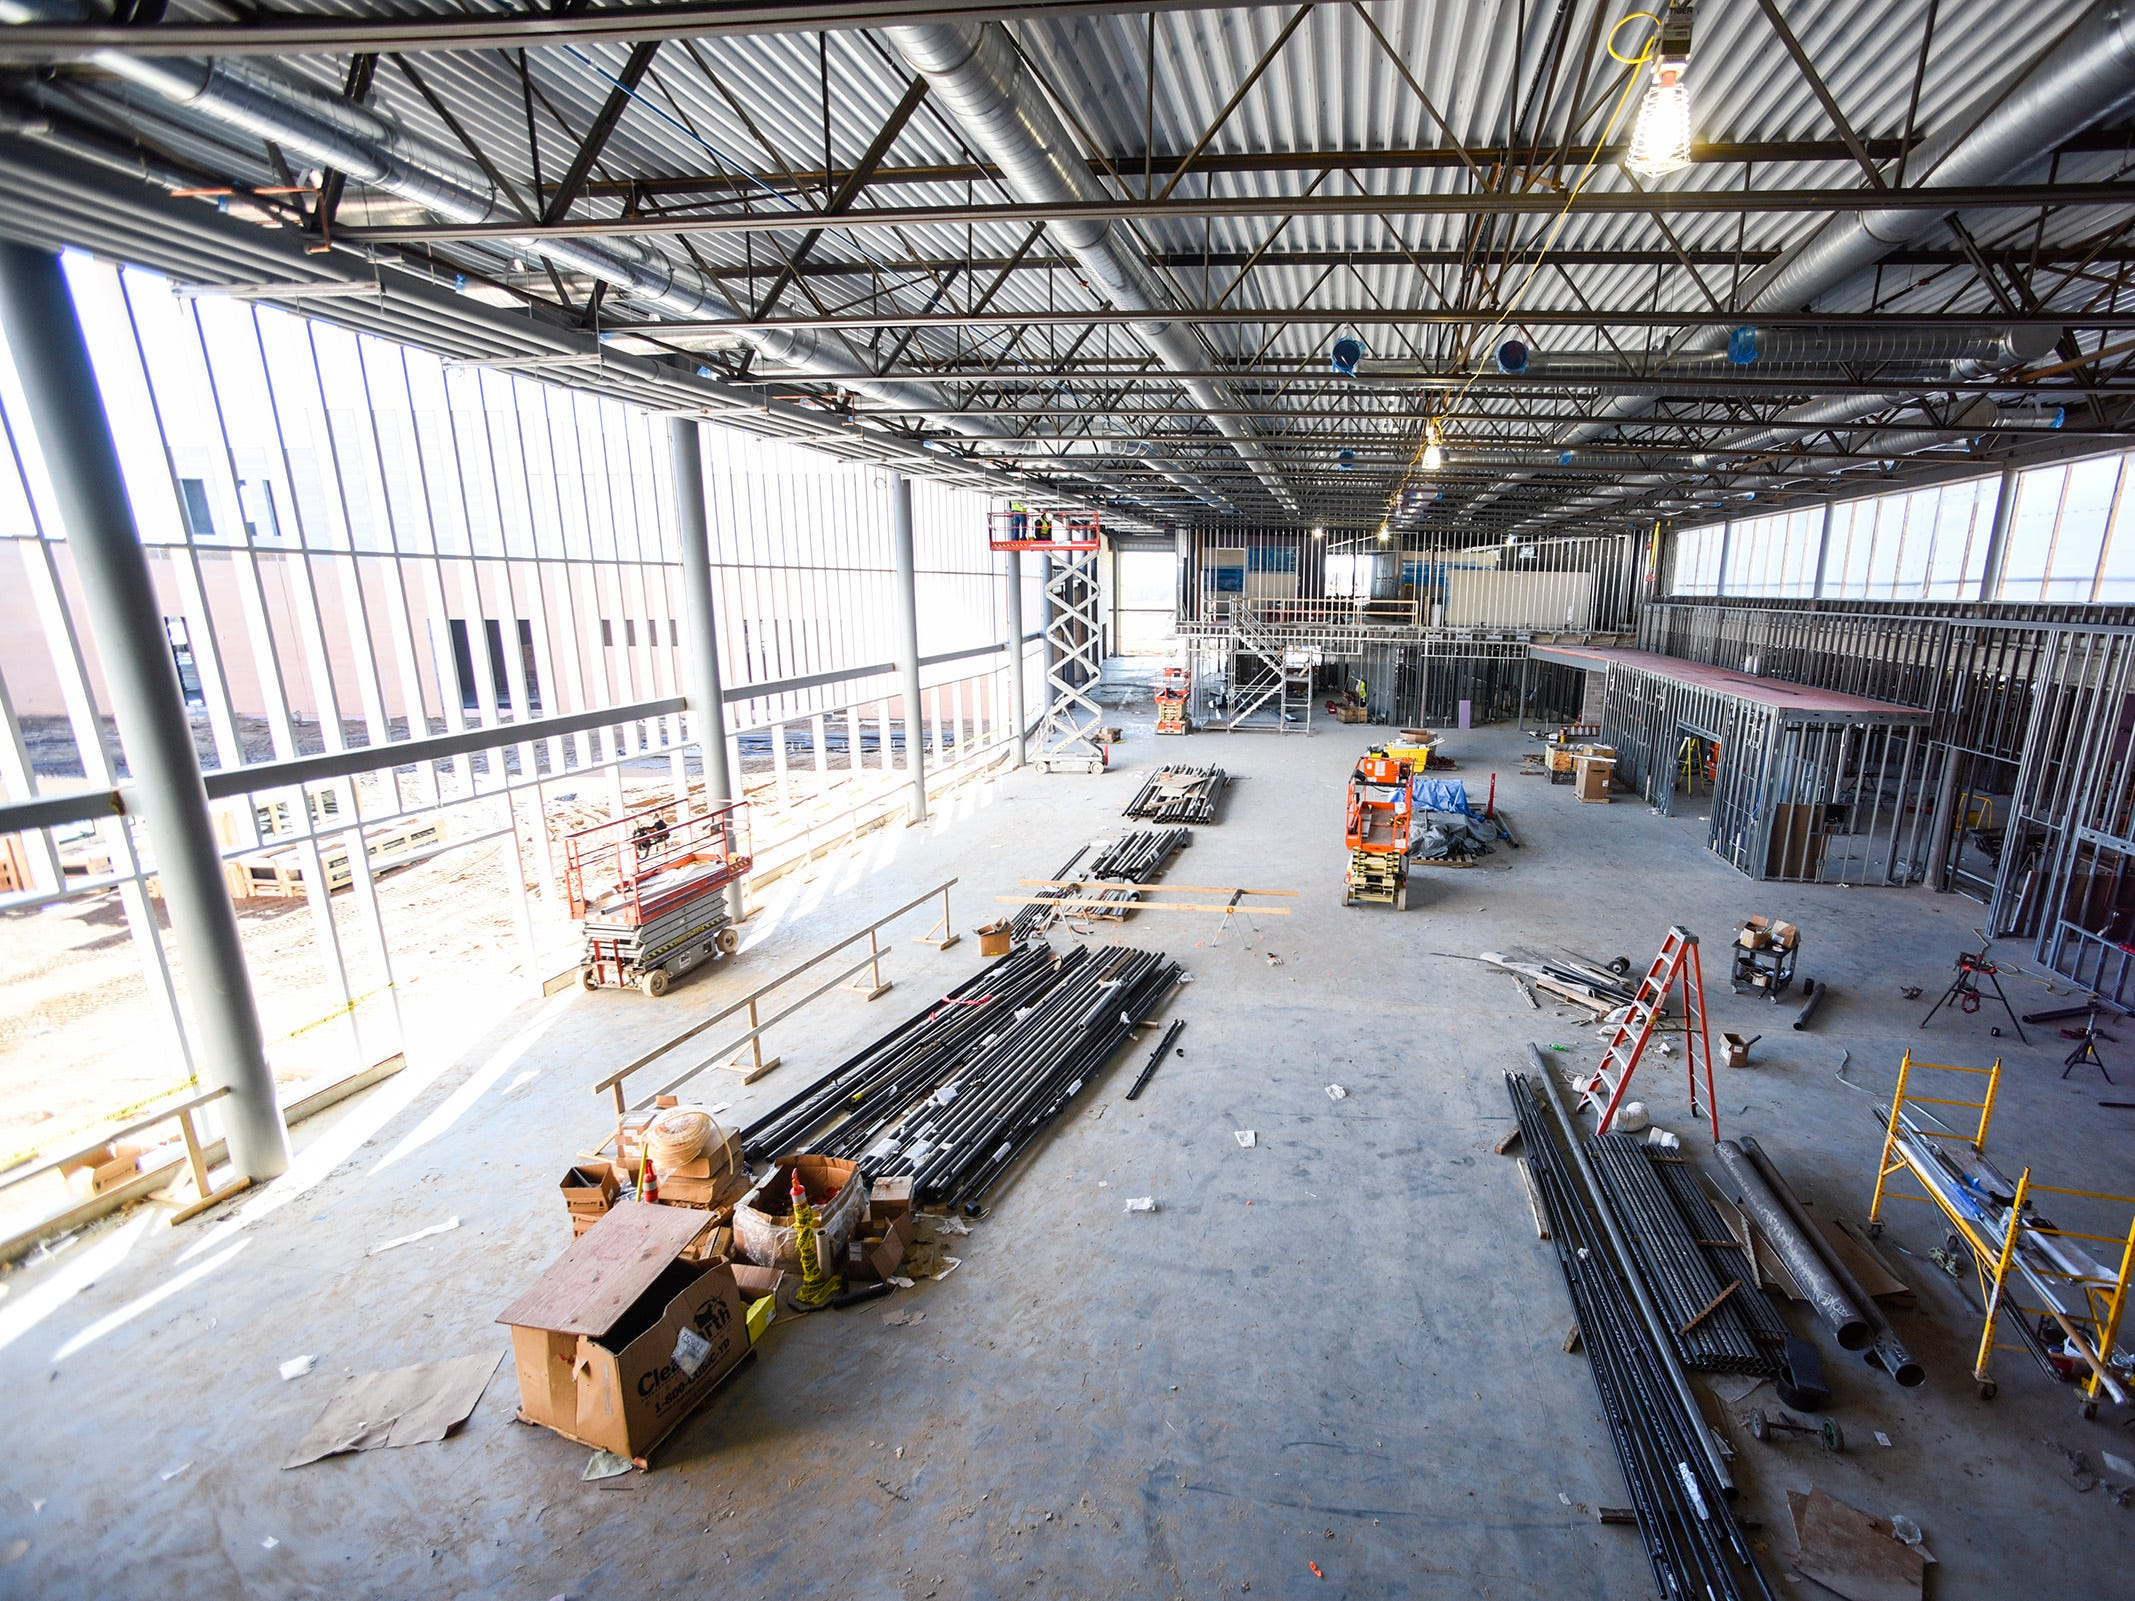 The view of the commons area from the second floor Thursday, Nov. 1, at the new Tech High School.